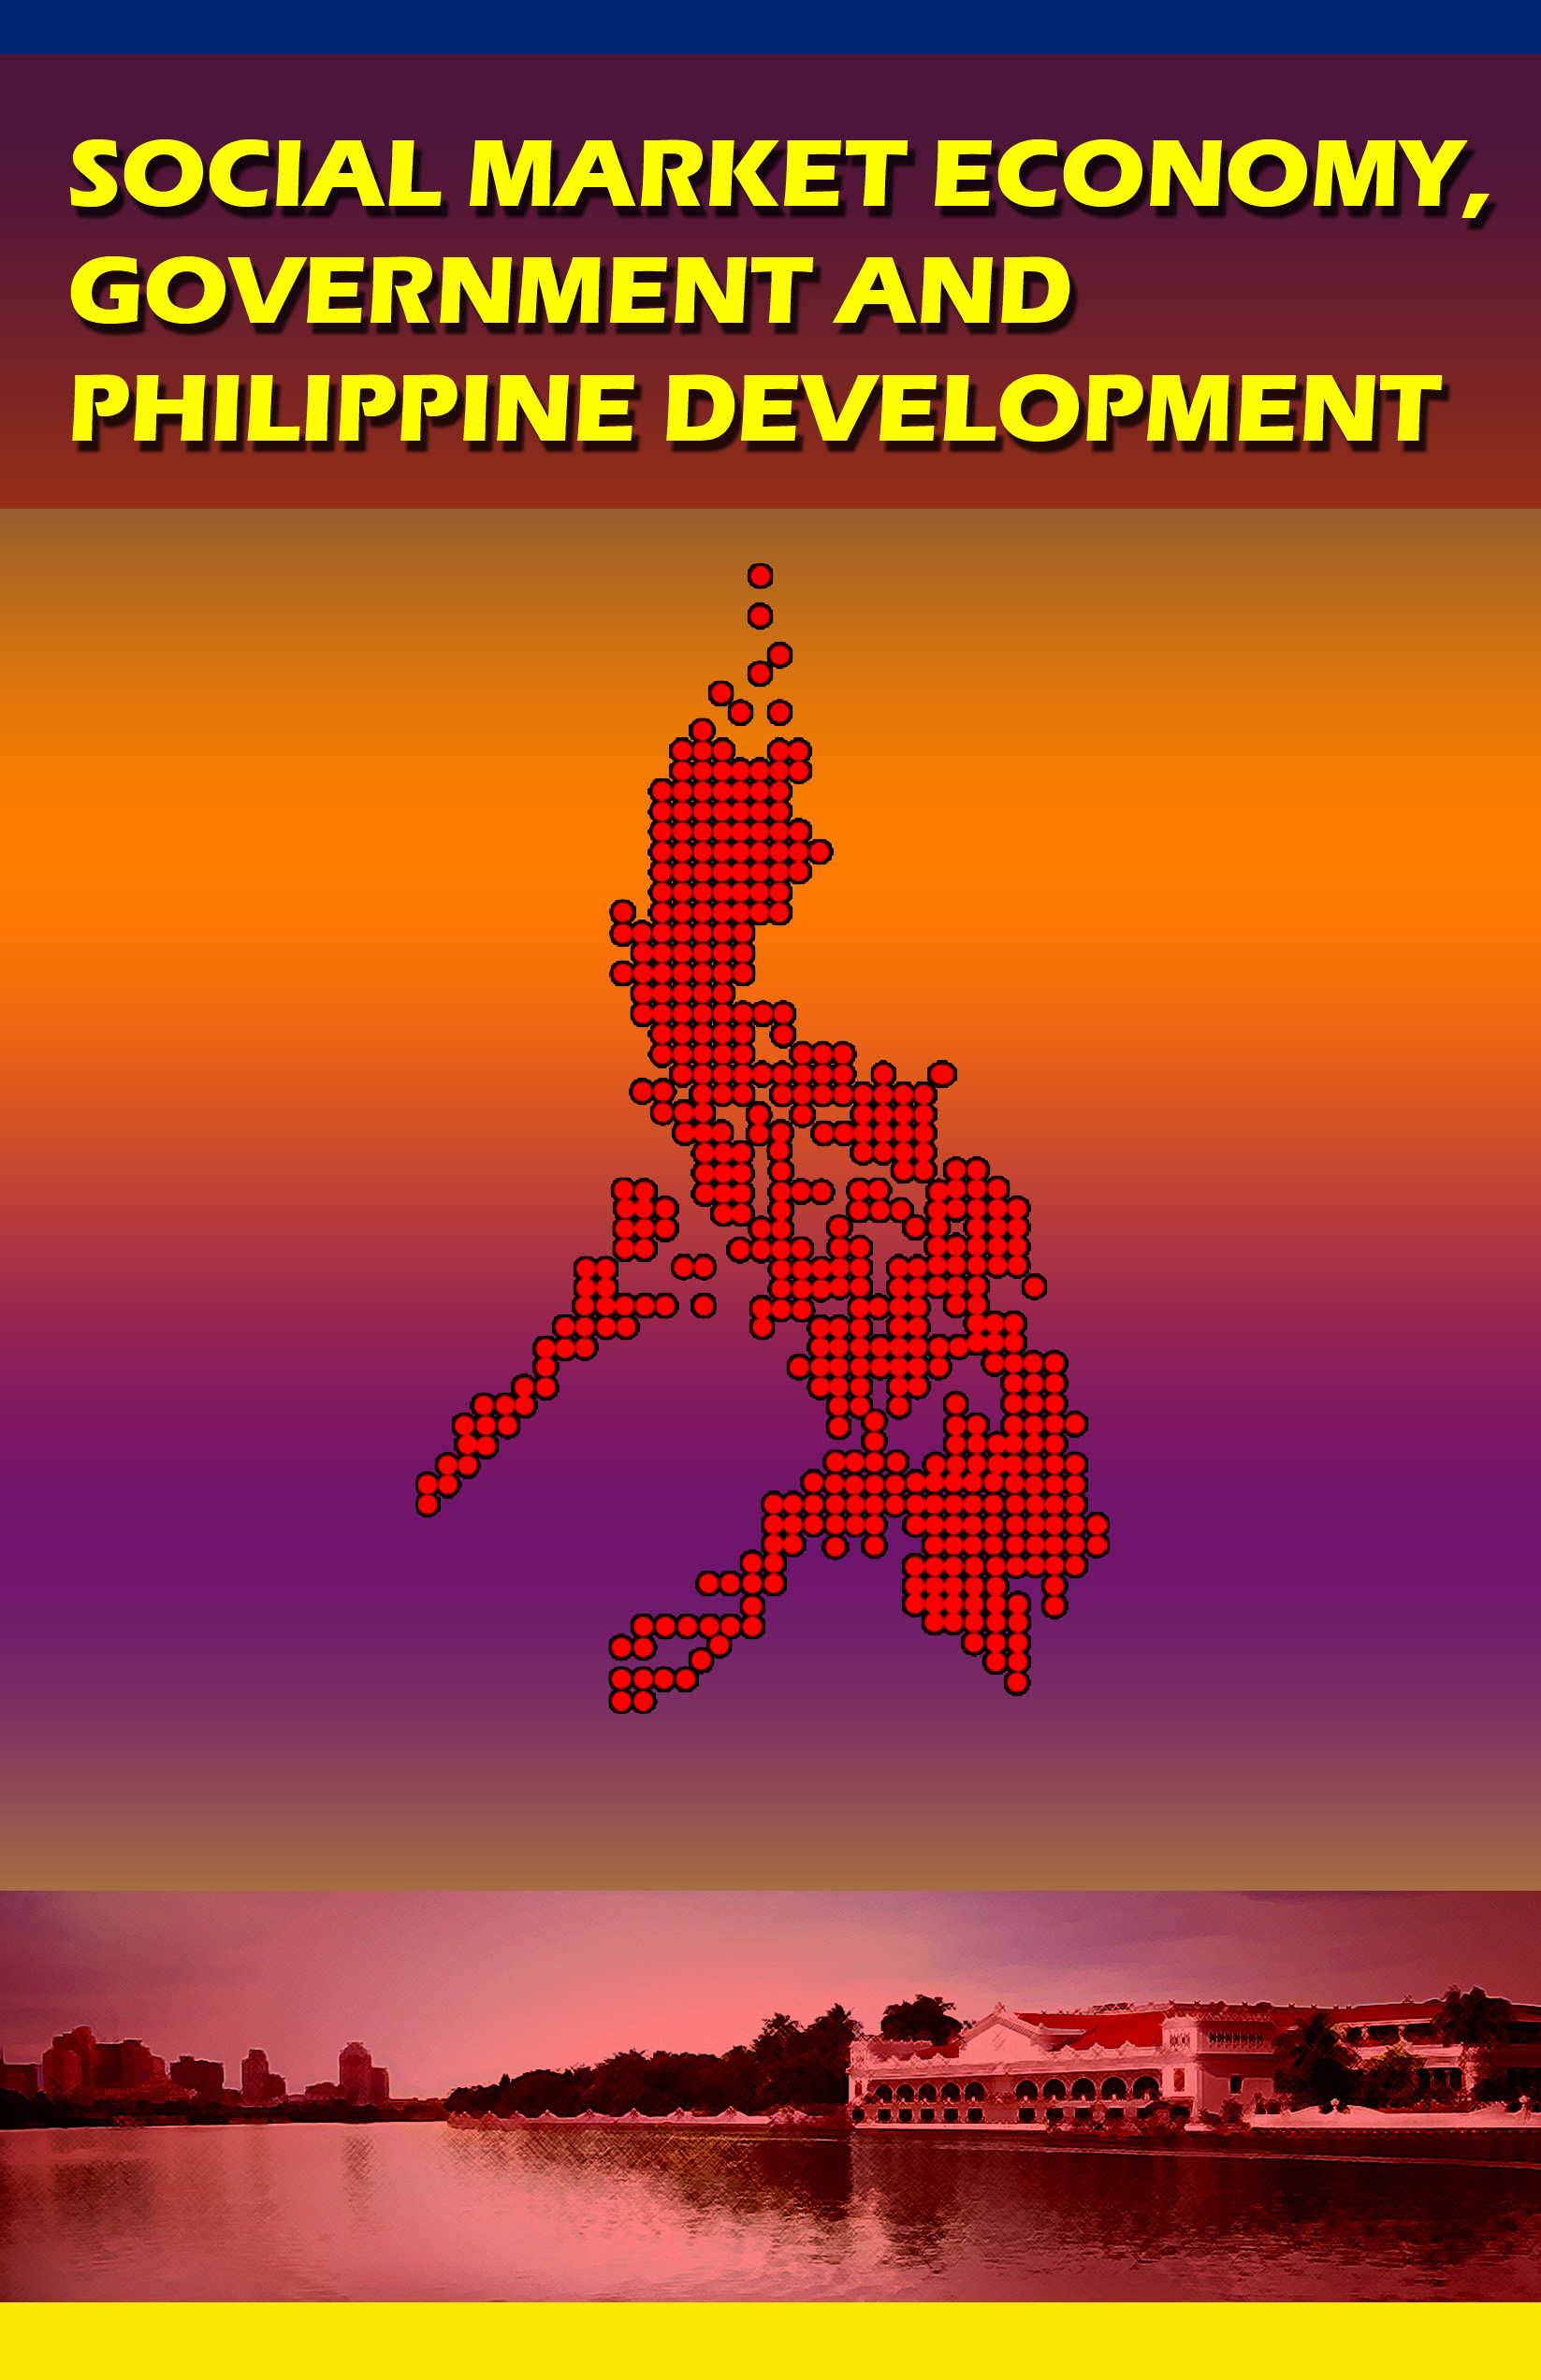 SOCIAL MARKET ECONOMY, GOVERNMENT AND PHILIPPINE DEVELOPMENT